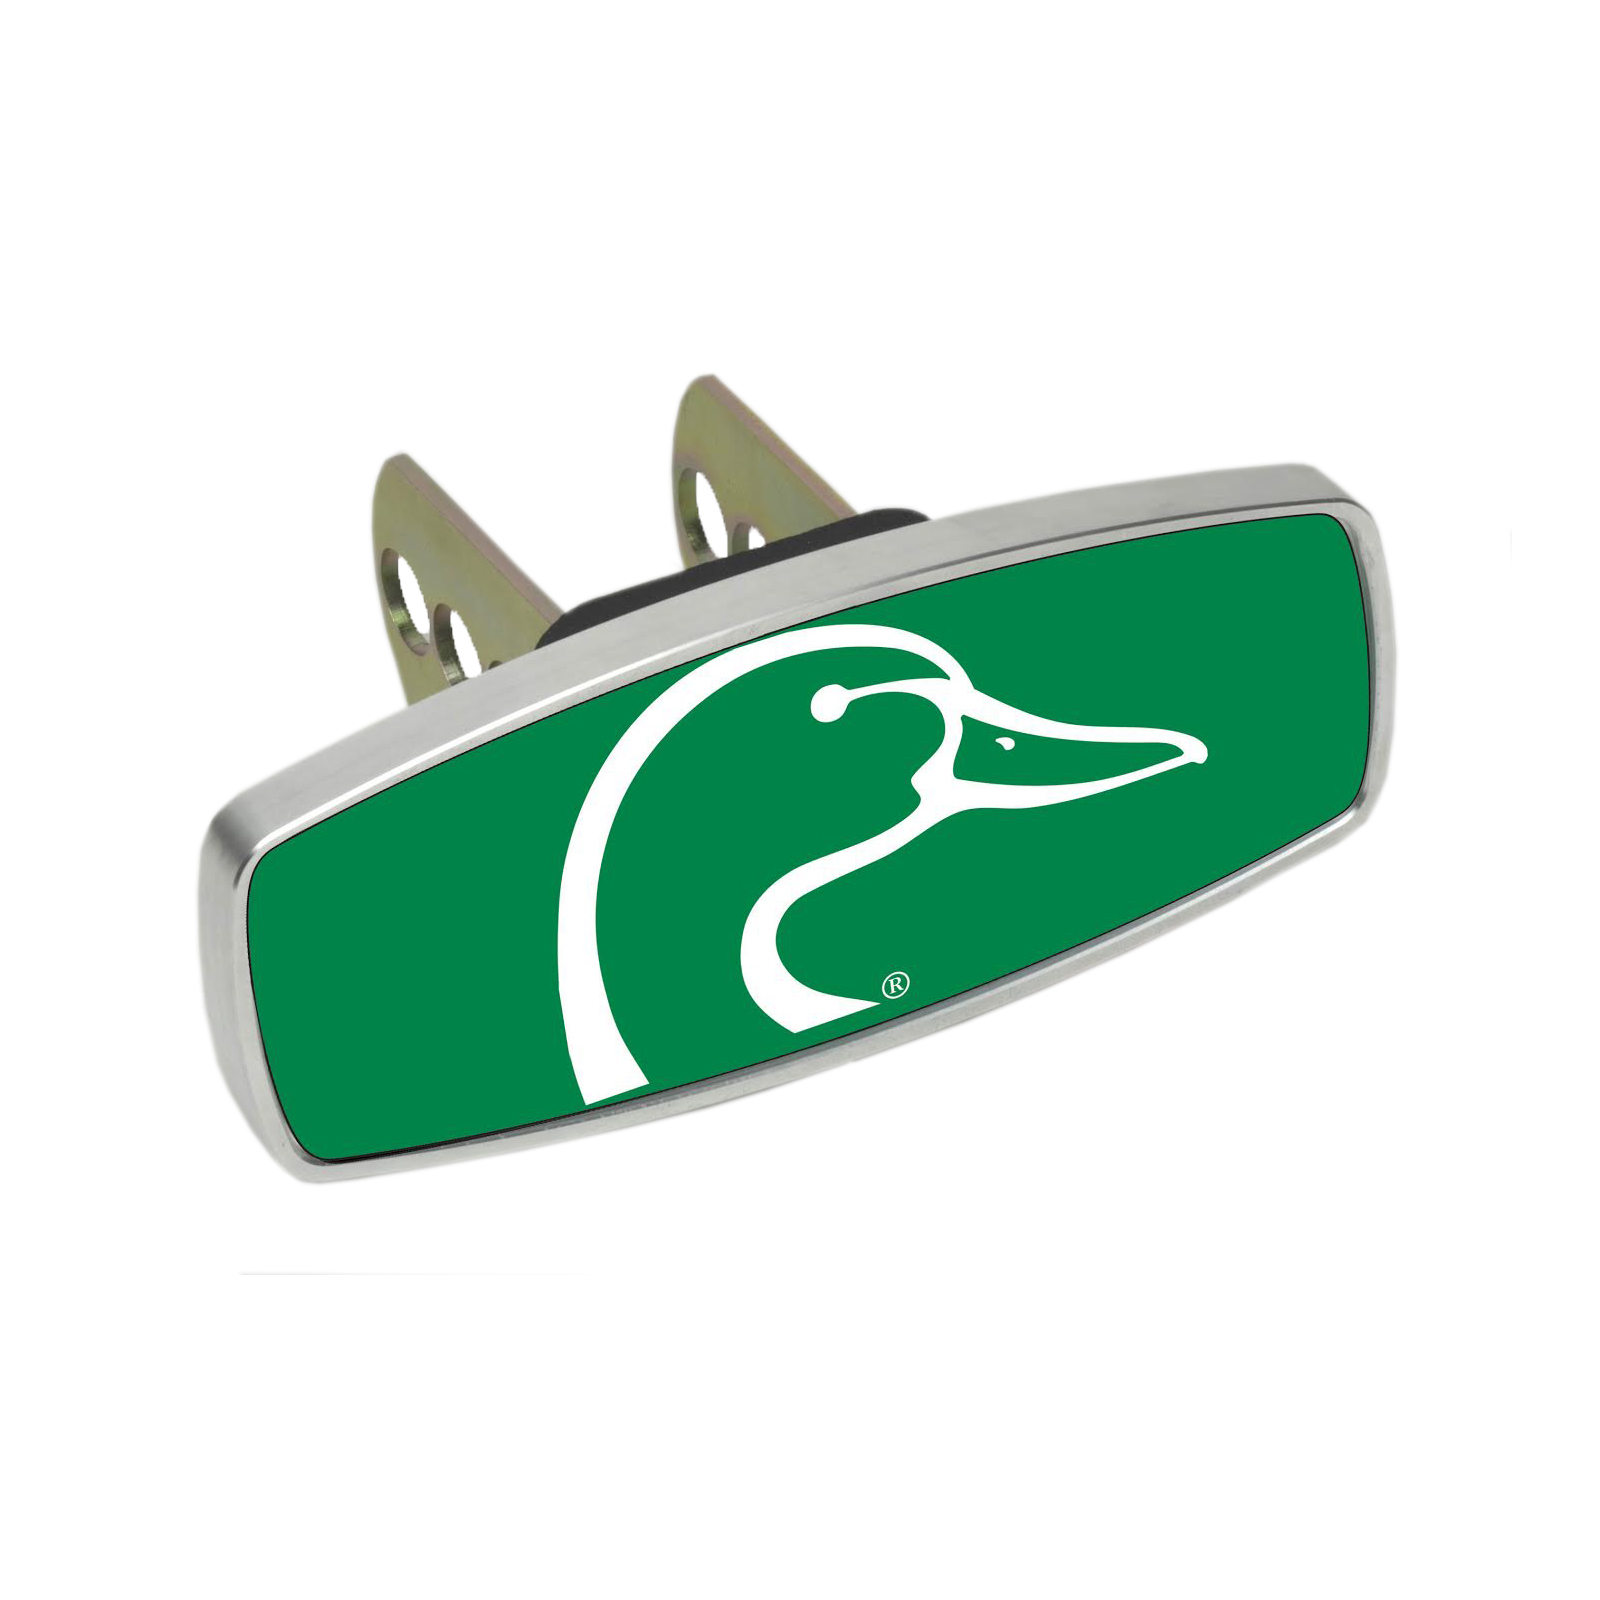 HitchMate Premier Series Hitch Cap Cover - Duck Head Green